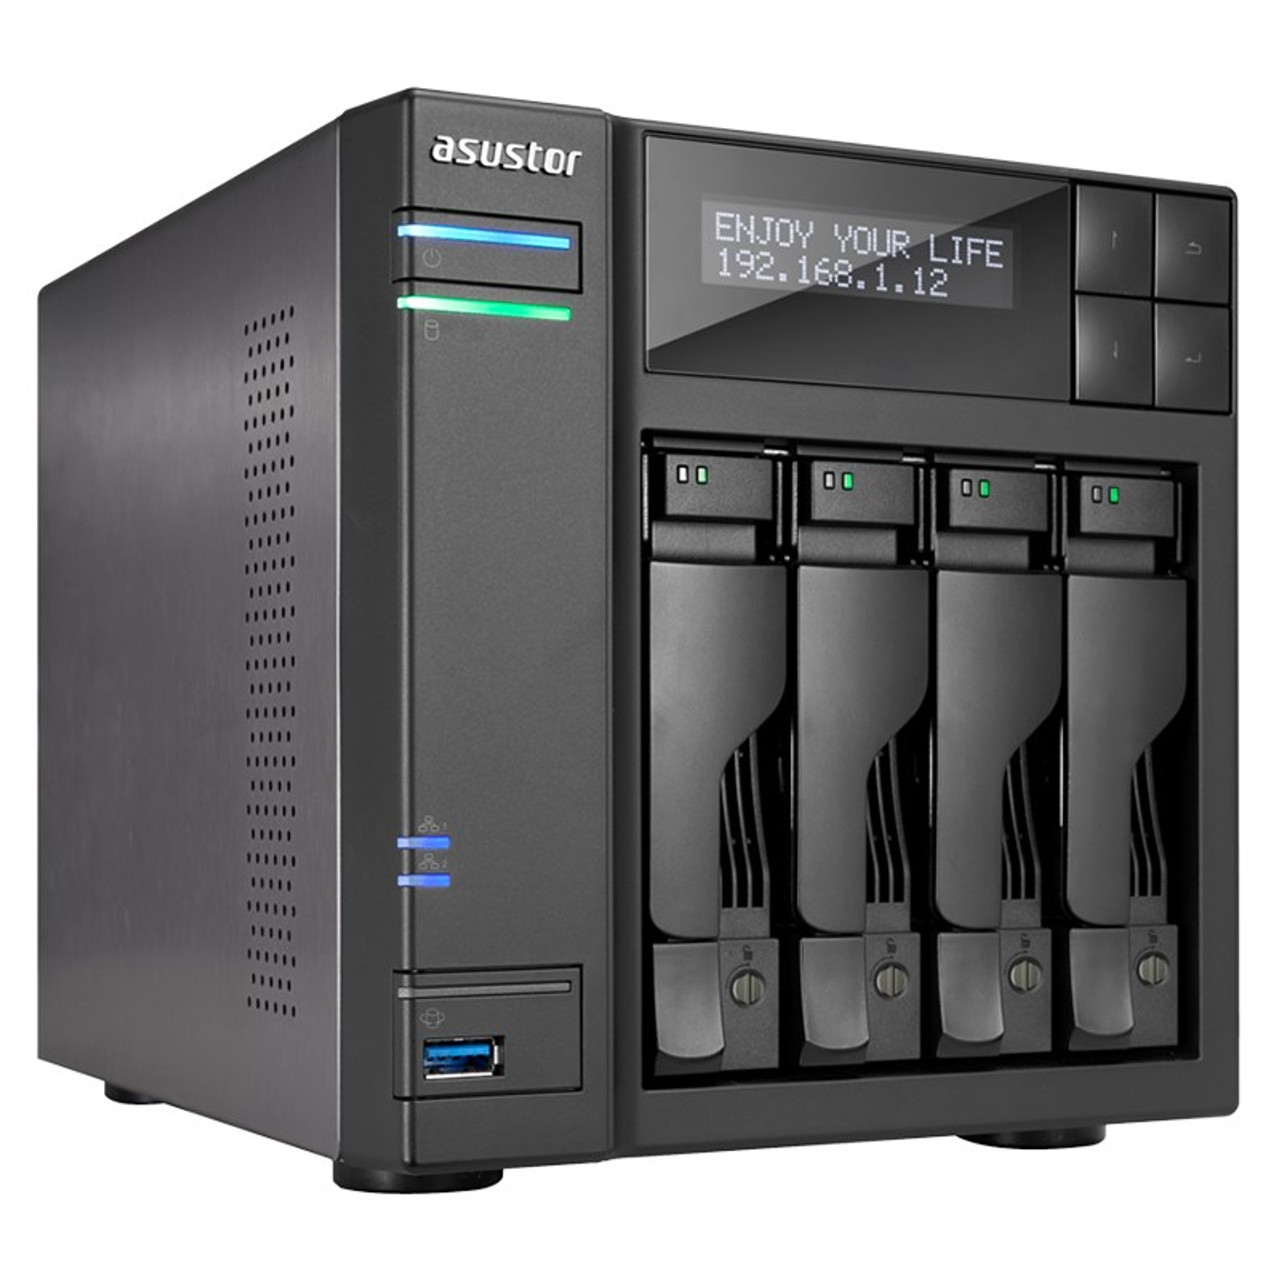 Image for Asustor AS7004T-i5 4-Bay Diskless NAS Intel Core i5 3.0GHz CPU 8GB RAM CX Computer Superstore